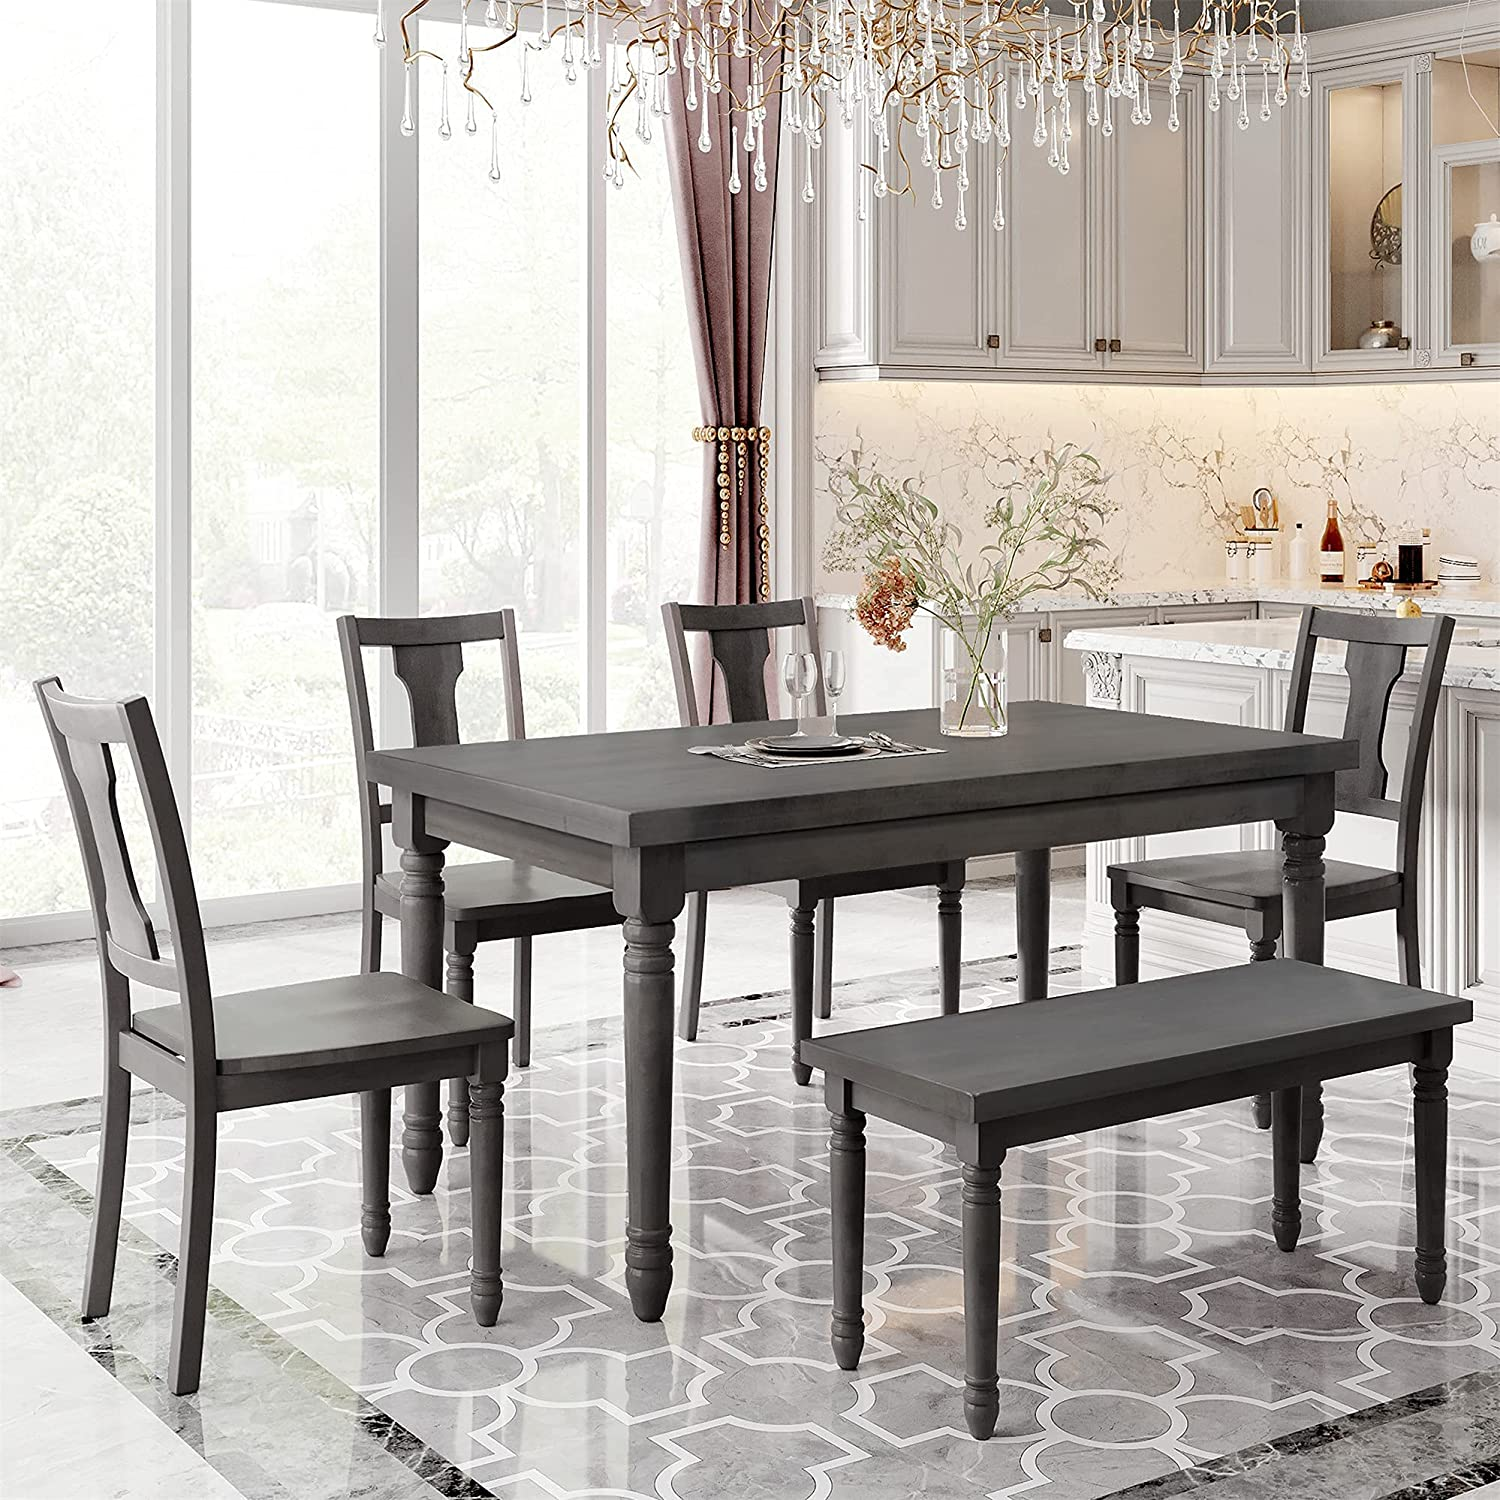 NUFR Home Dining quality assurance Room Table Set Atlanta Mall Kitchen with Piece 6 Bench